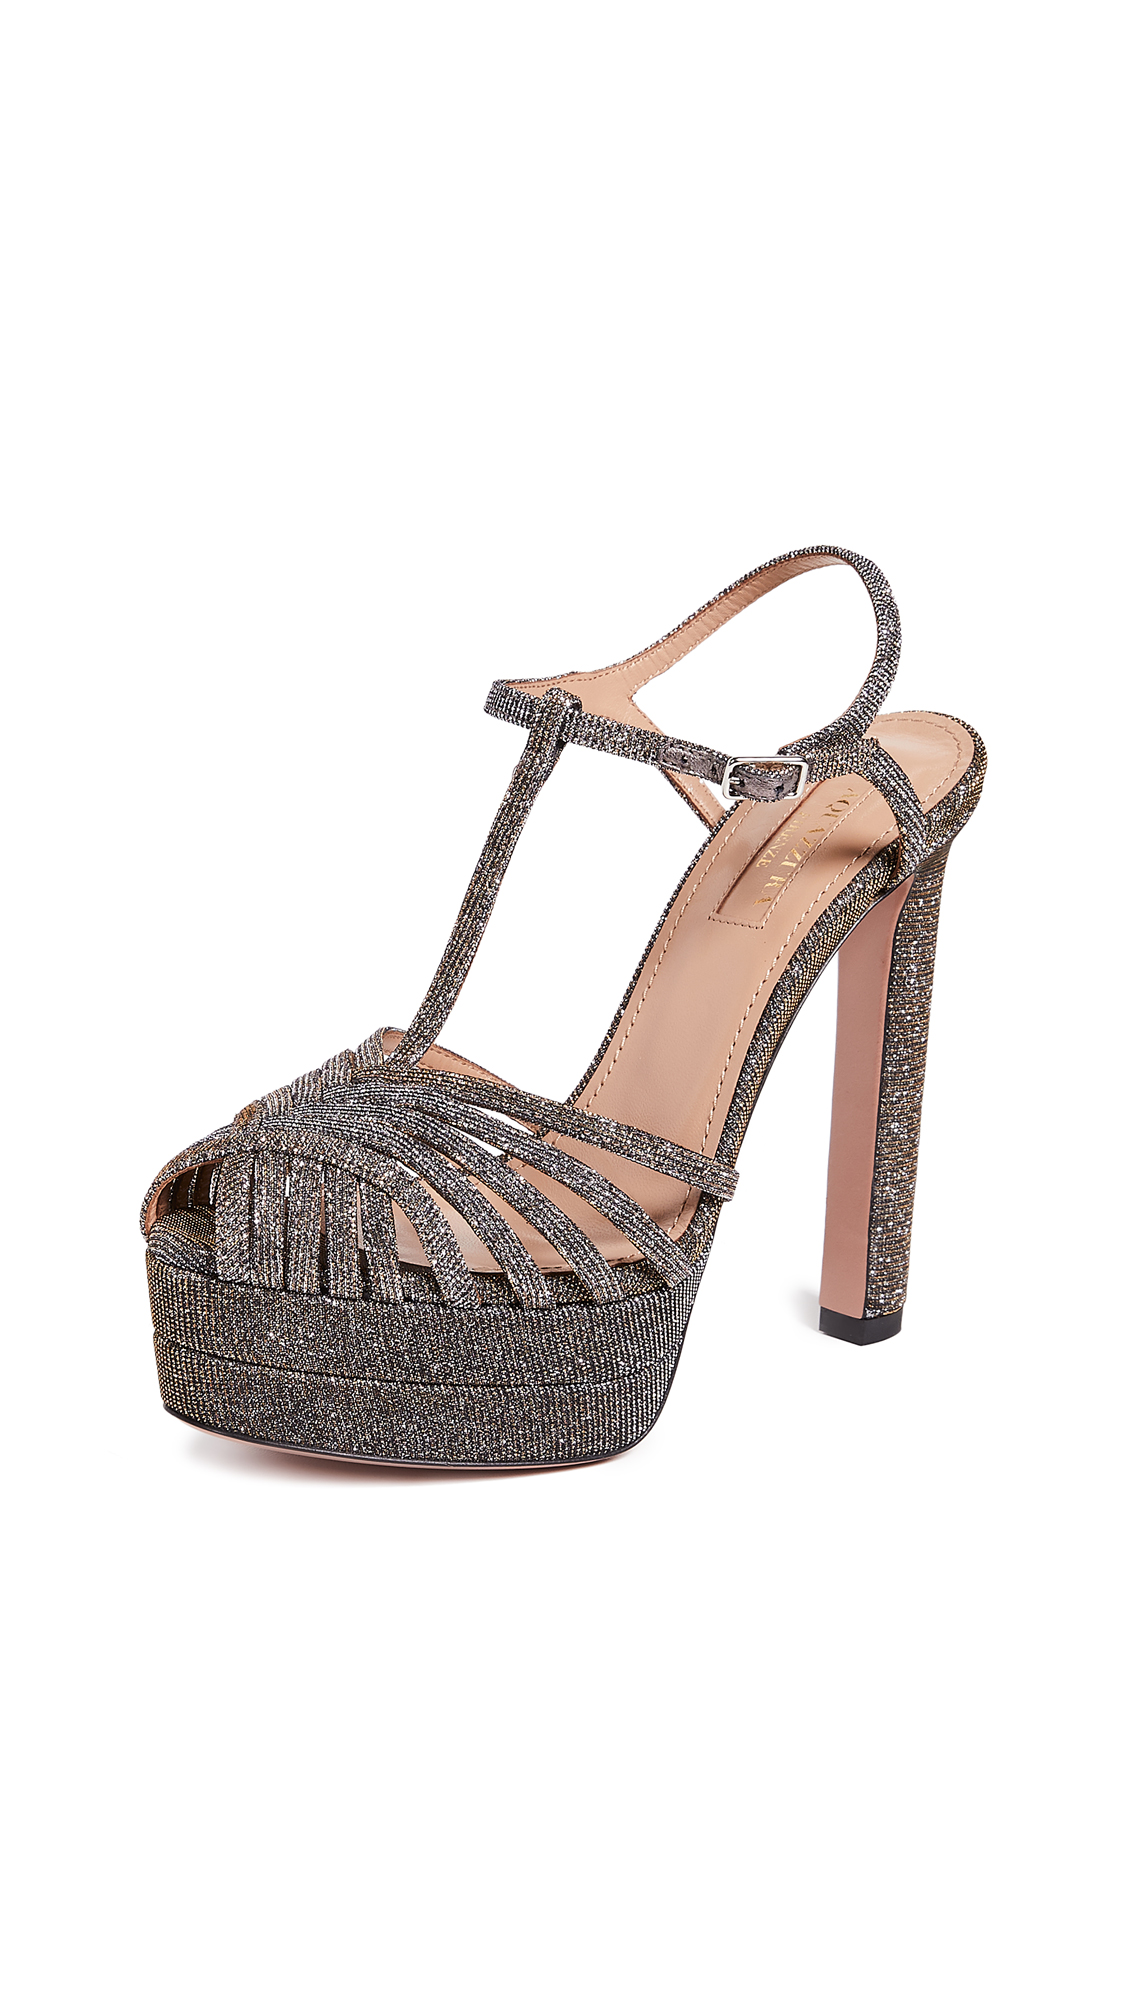 Aquazzura Moonlight Plateau 130 Sandals - Multimetal